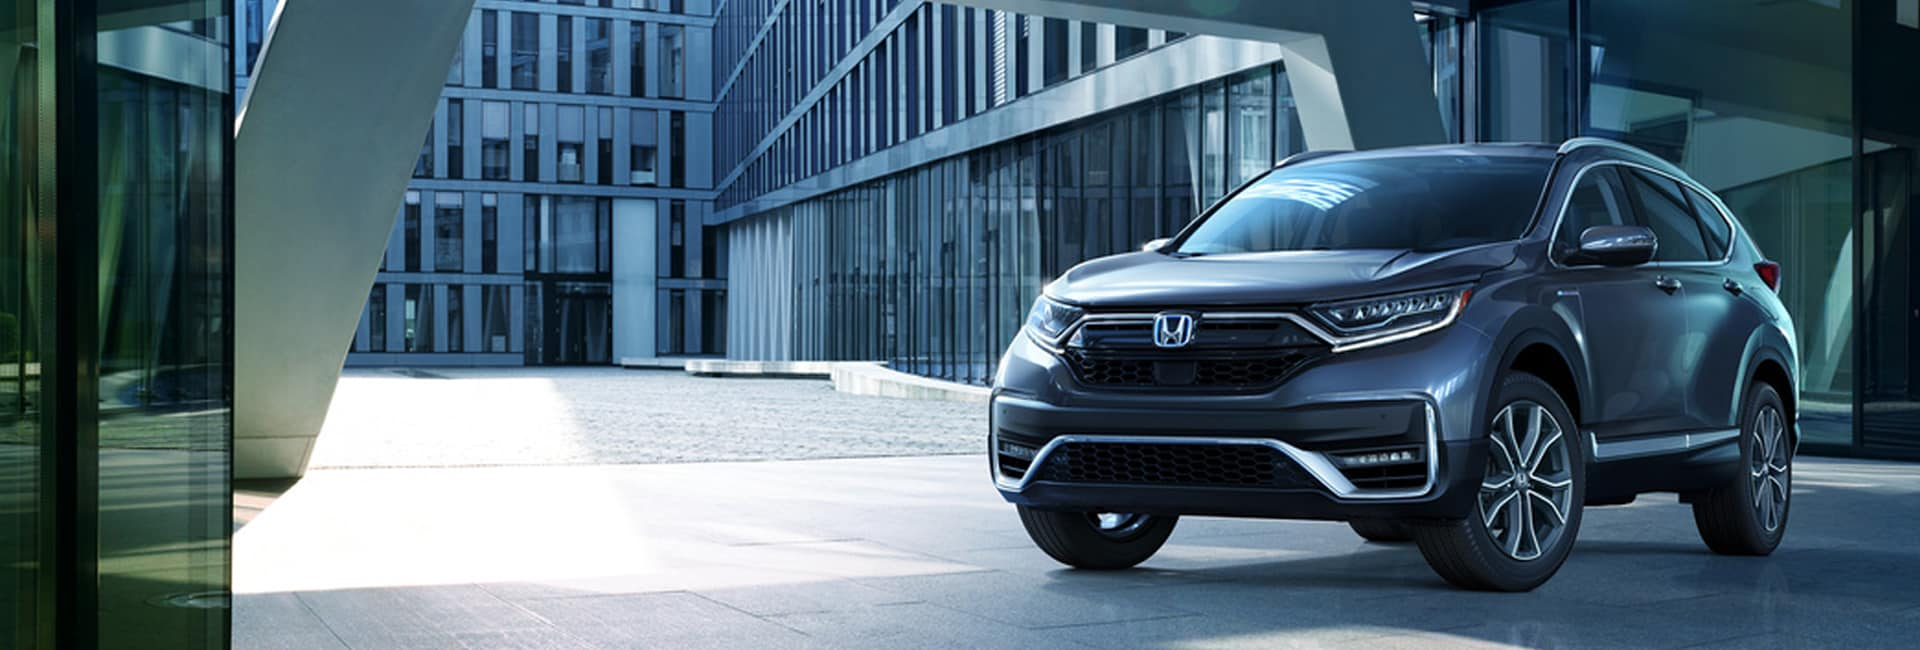 2020 Honda CR-V  Hybrid Exterior Features